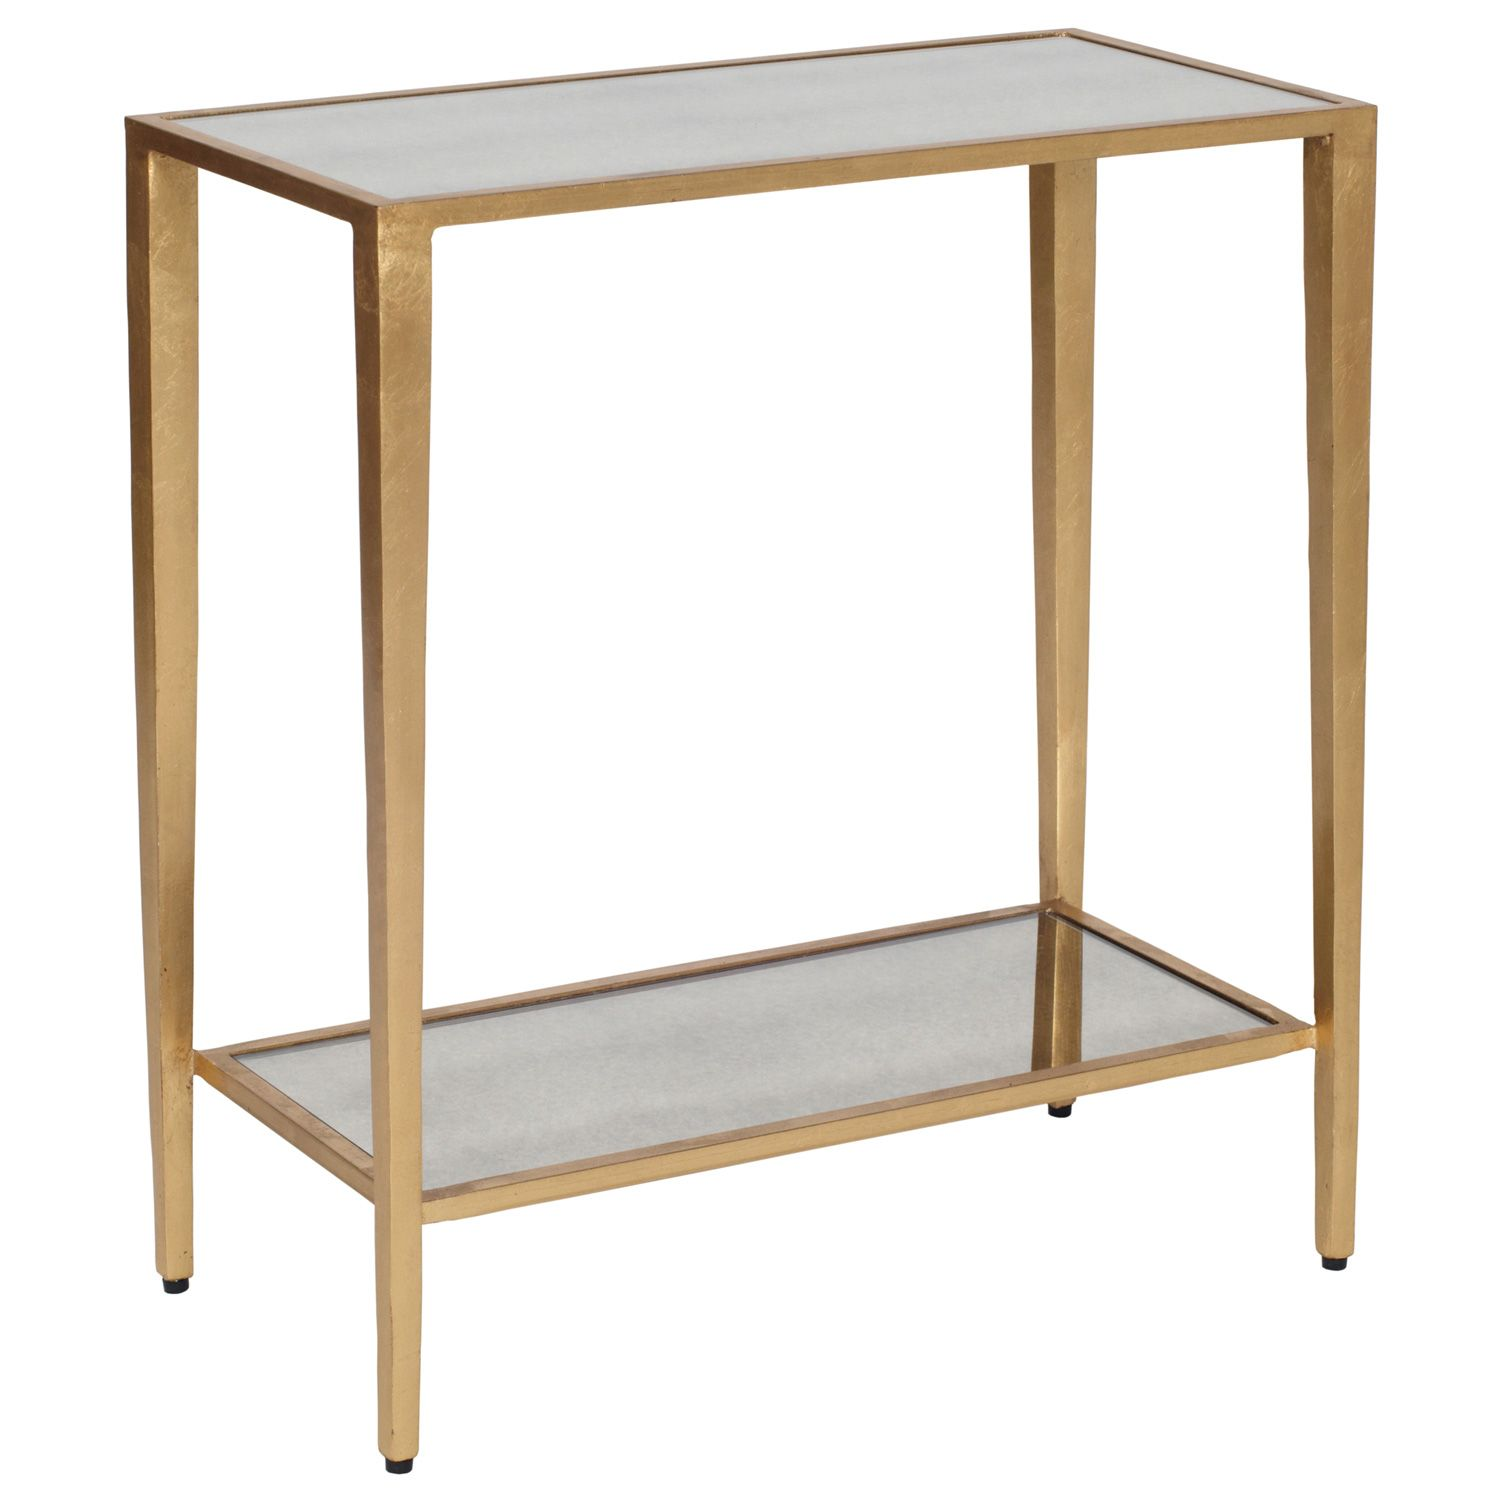 Worlds Away Joyce Gold Side Table Laylagrayce 20 X 10 X 22 H 537 Silver Side Table Gold Side Table Modern End Tables